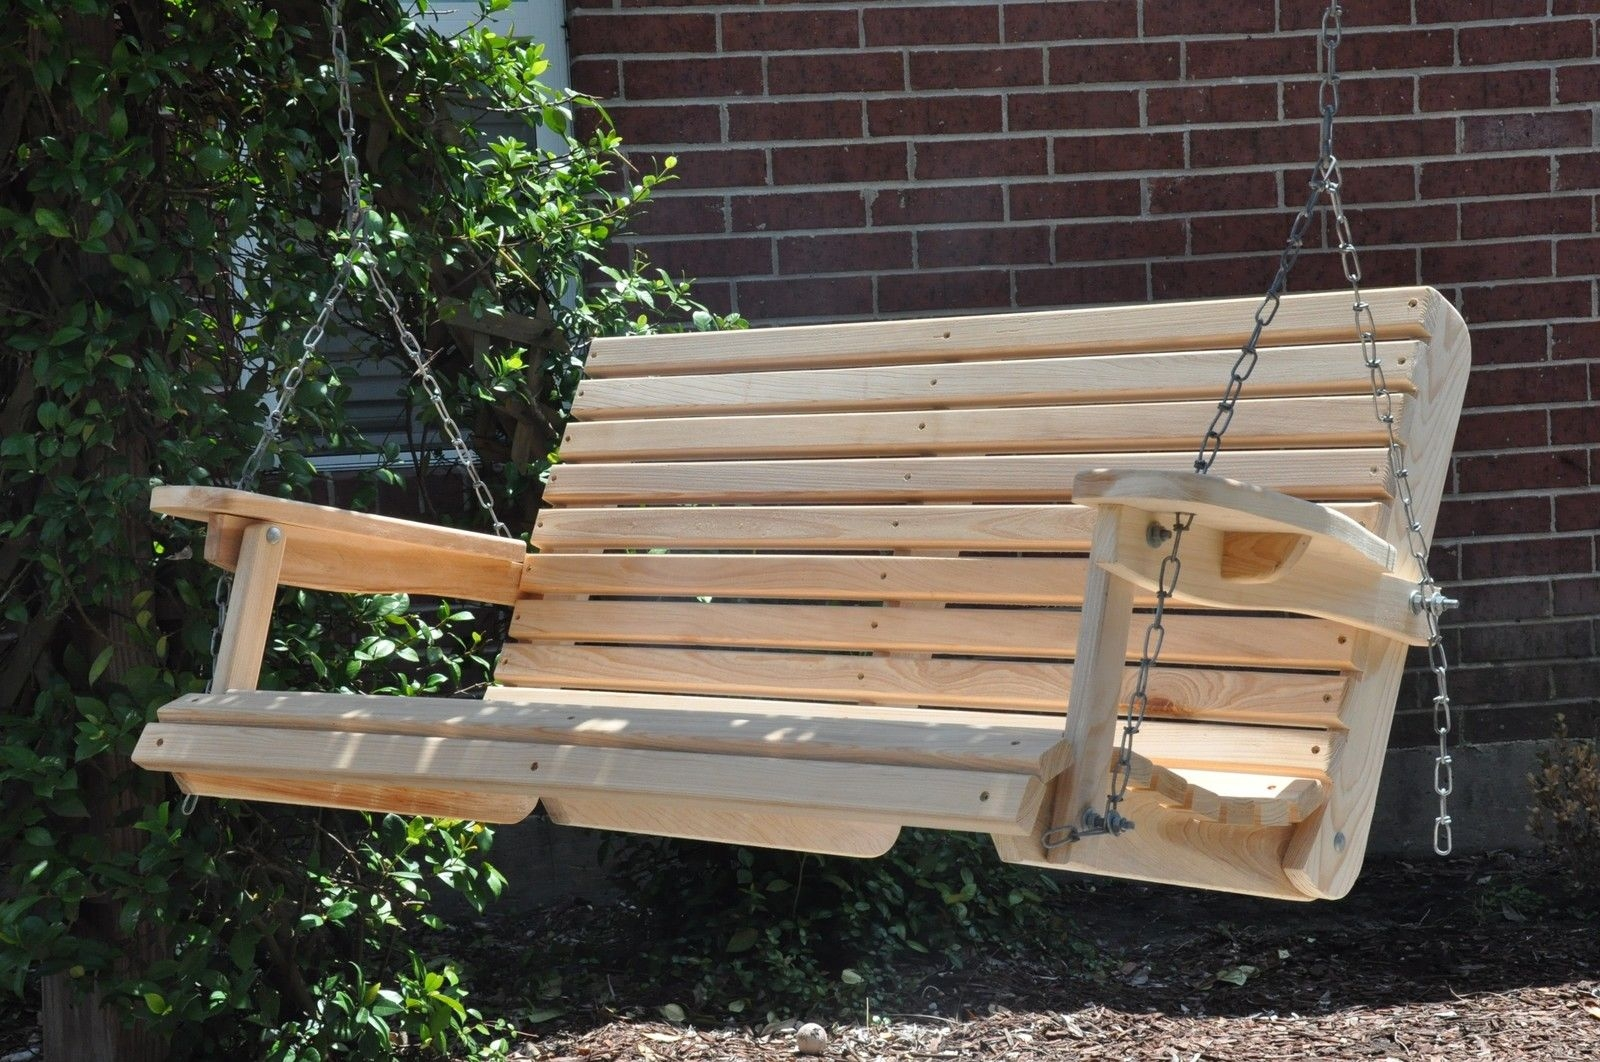 How to Build a Wooden Porch Swing - Wood Turned